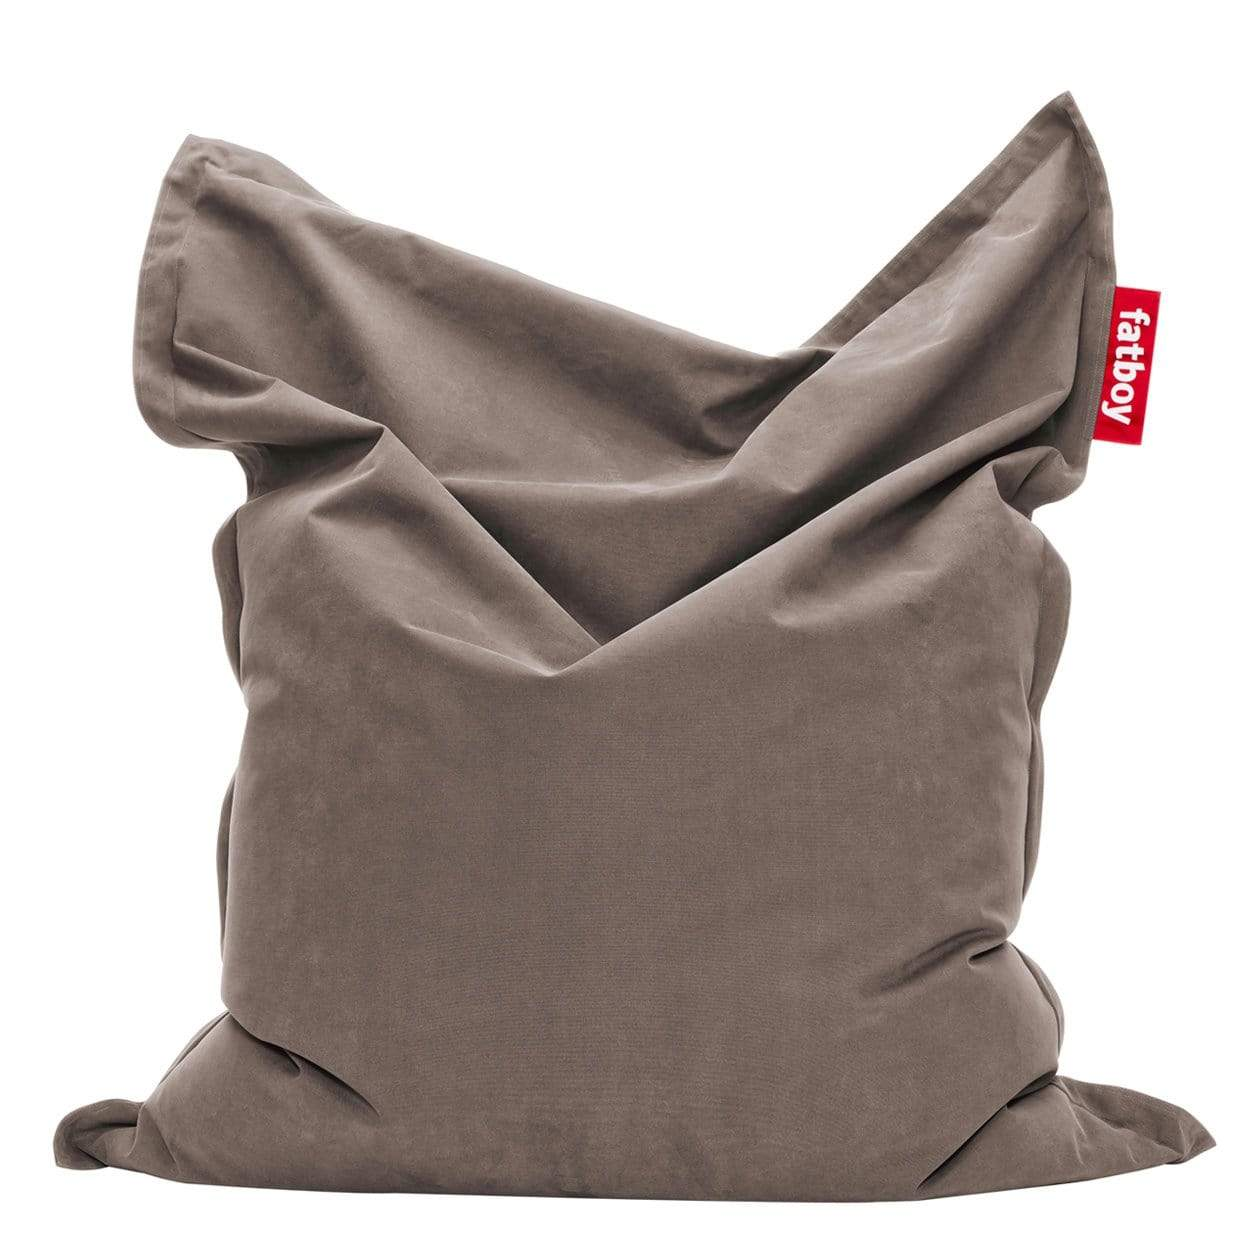 Fatboy - Original Stonewashed Cotton Beanbag